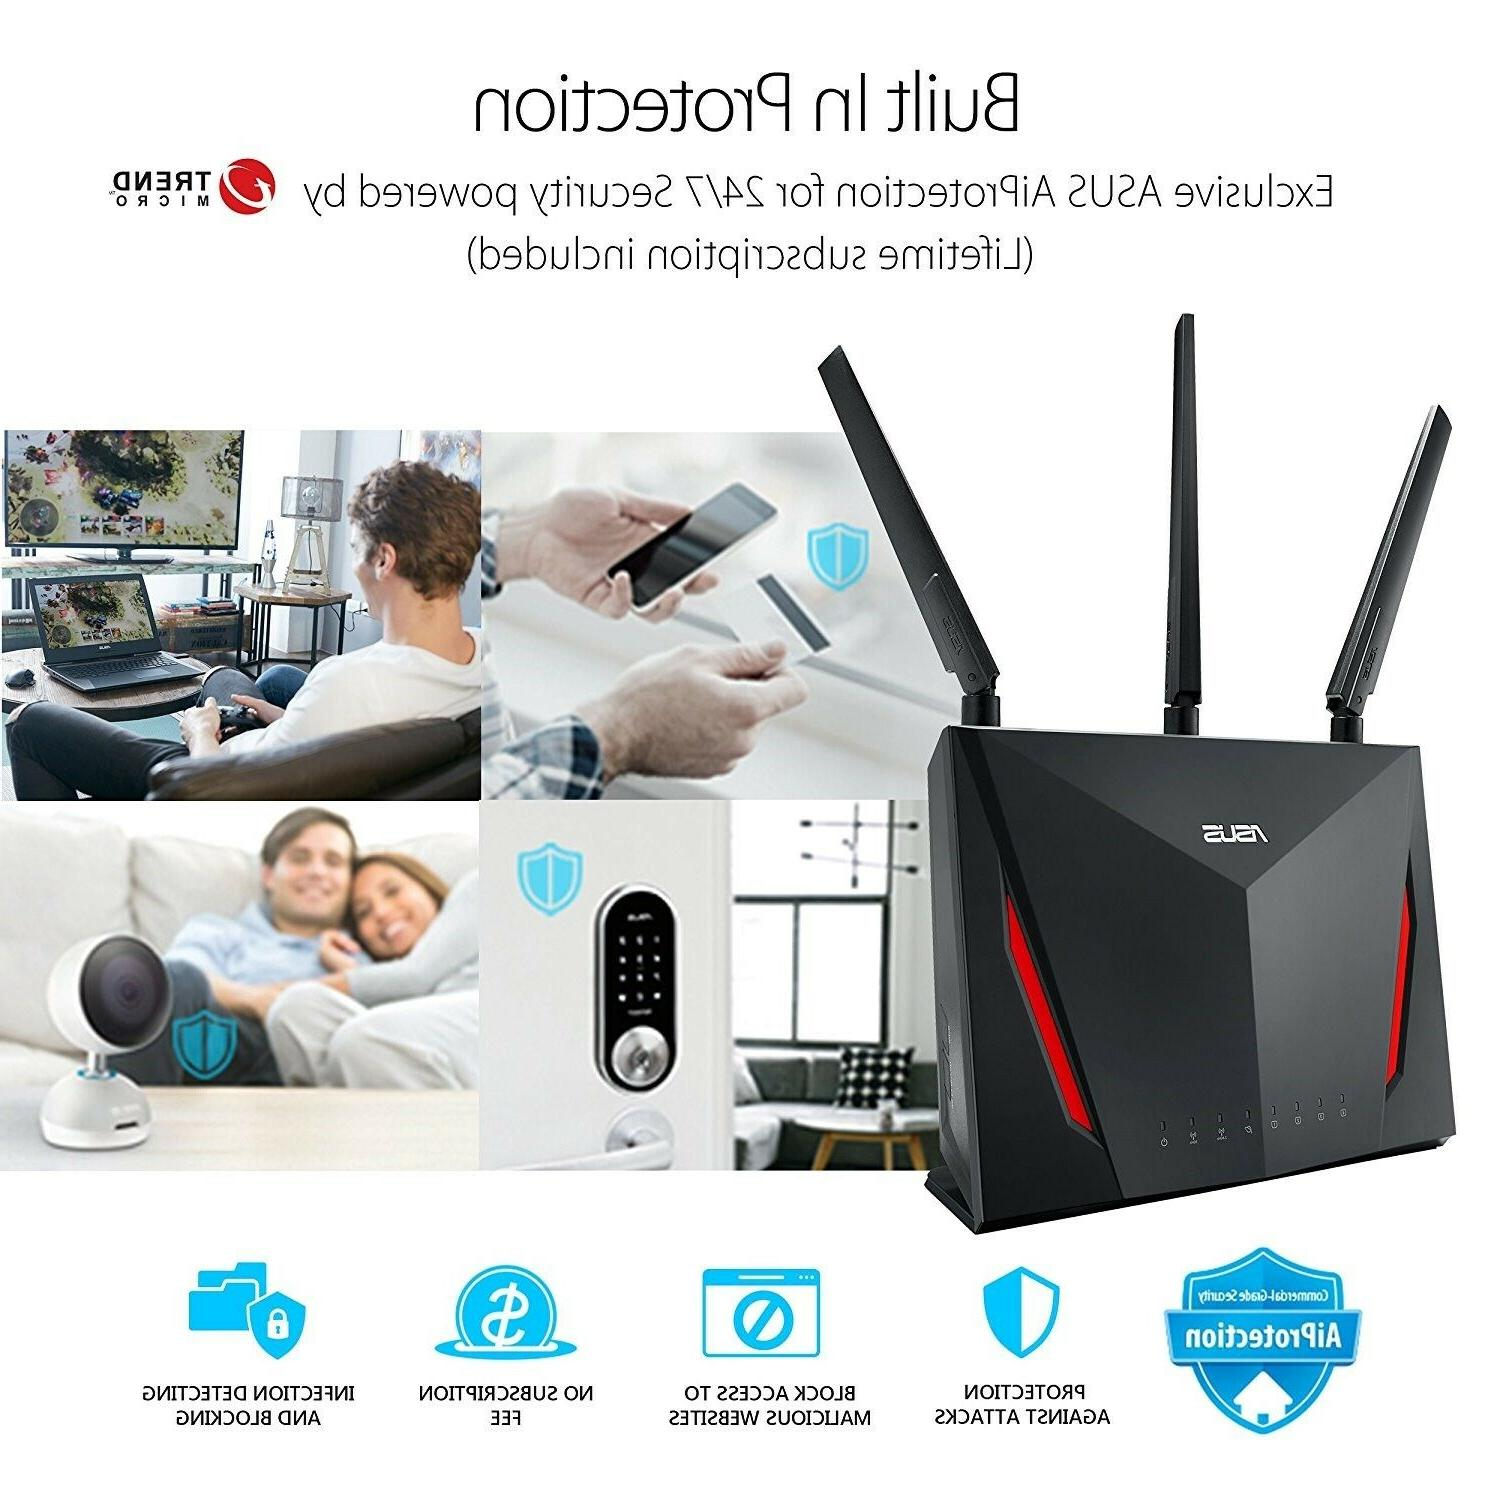 -NEW- Dual-band Wireless